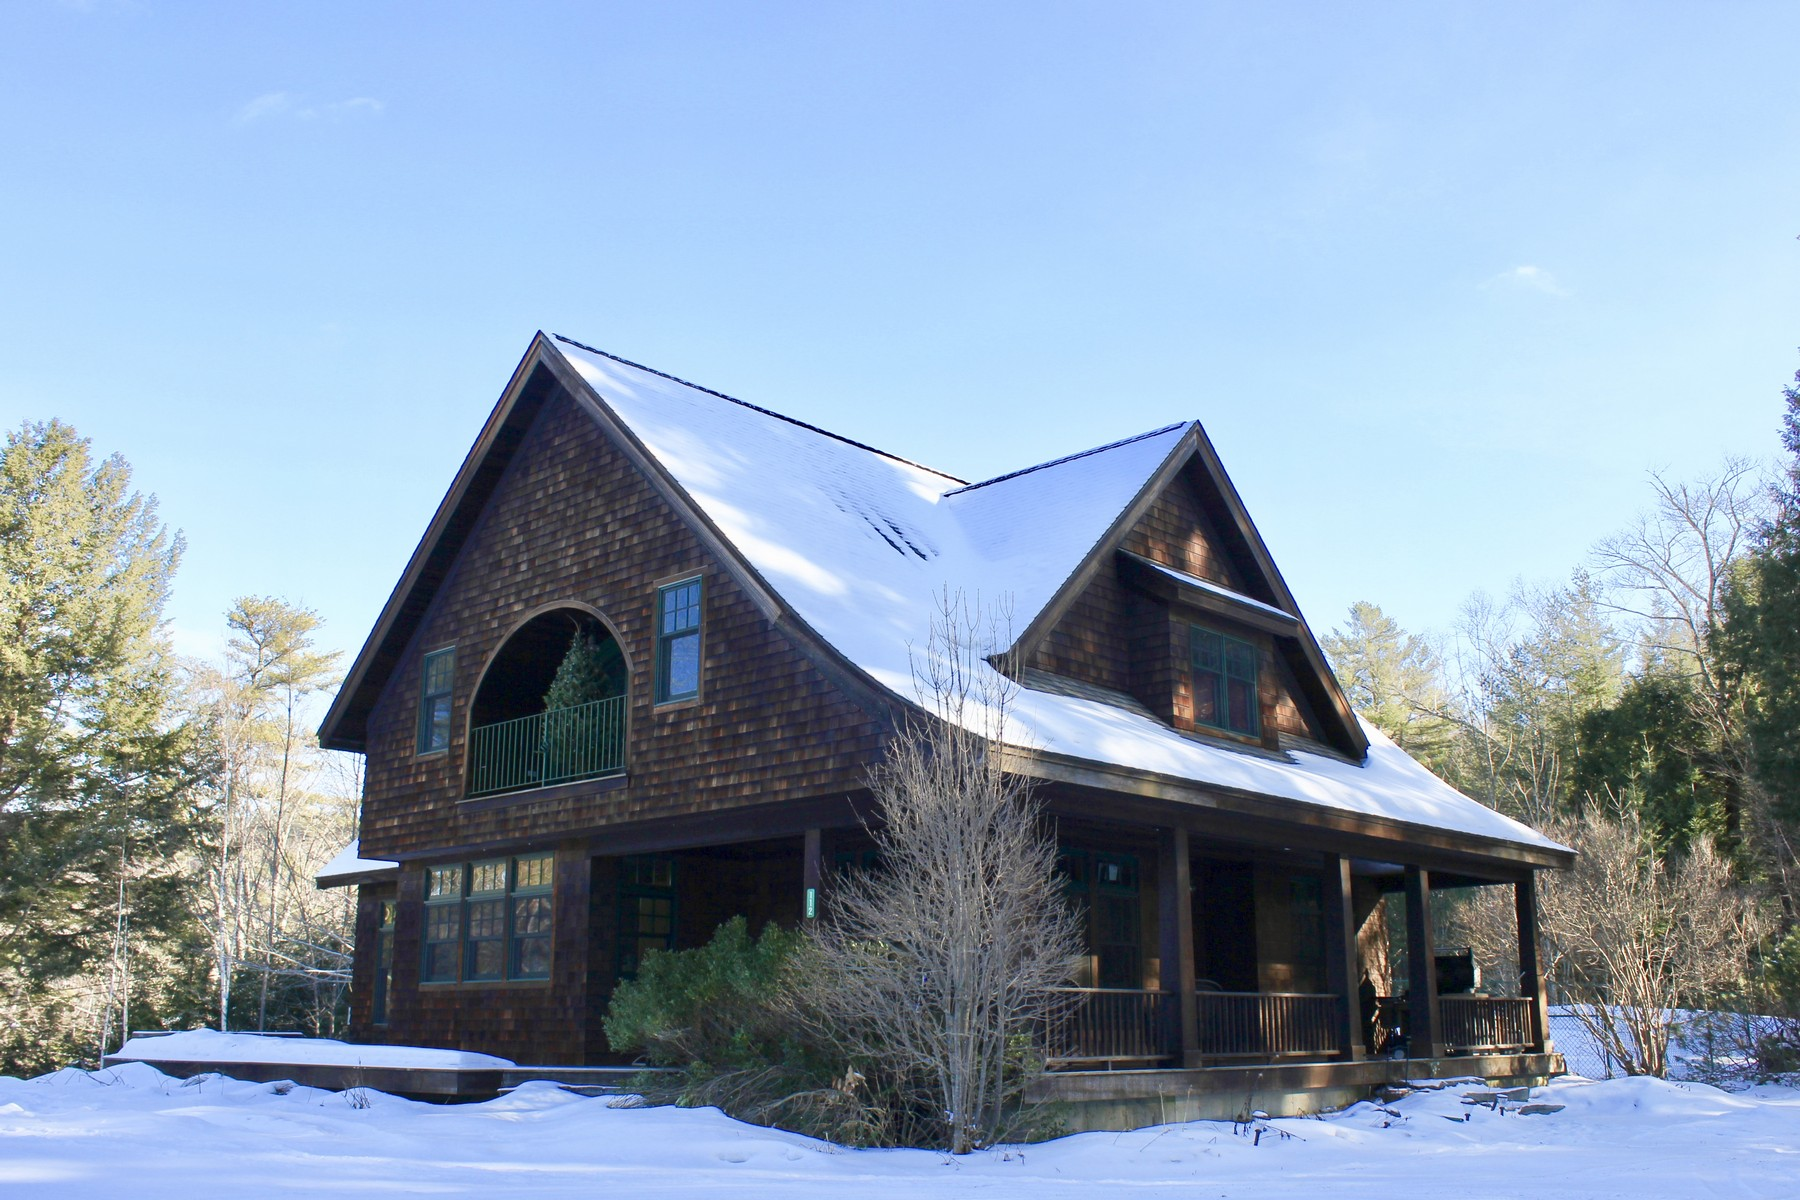 Single Family Home for Sale at Lake Rescue Adirondack 112 Fishing Access Rd Ludlow, Vermont 05149 United States